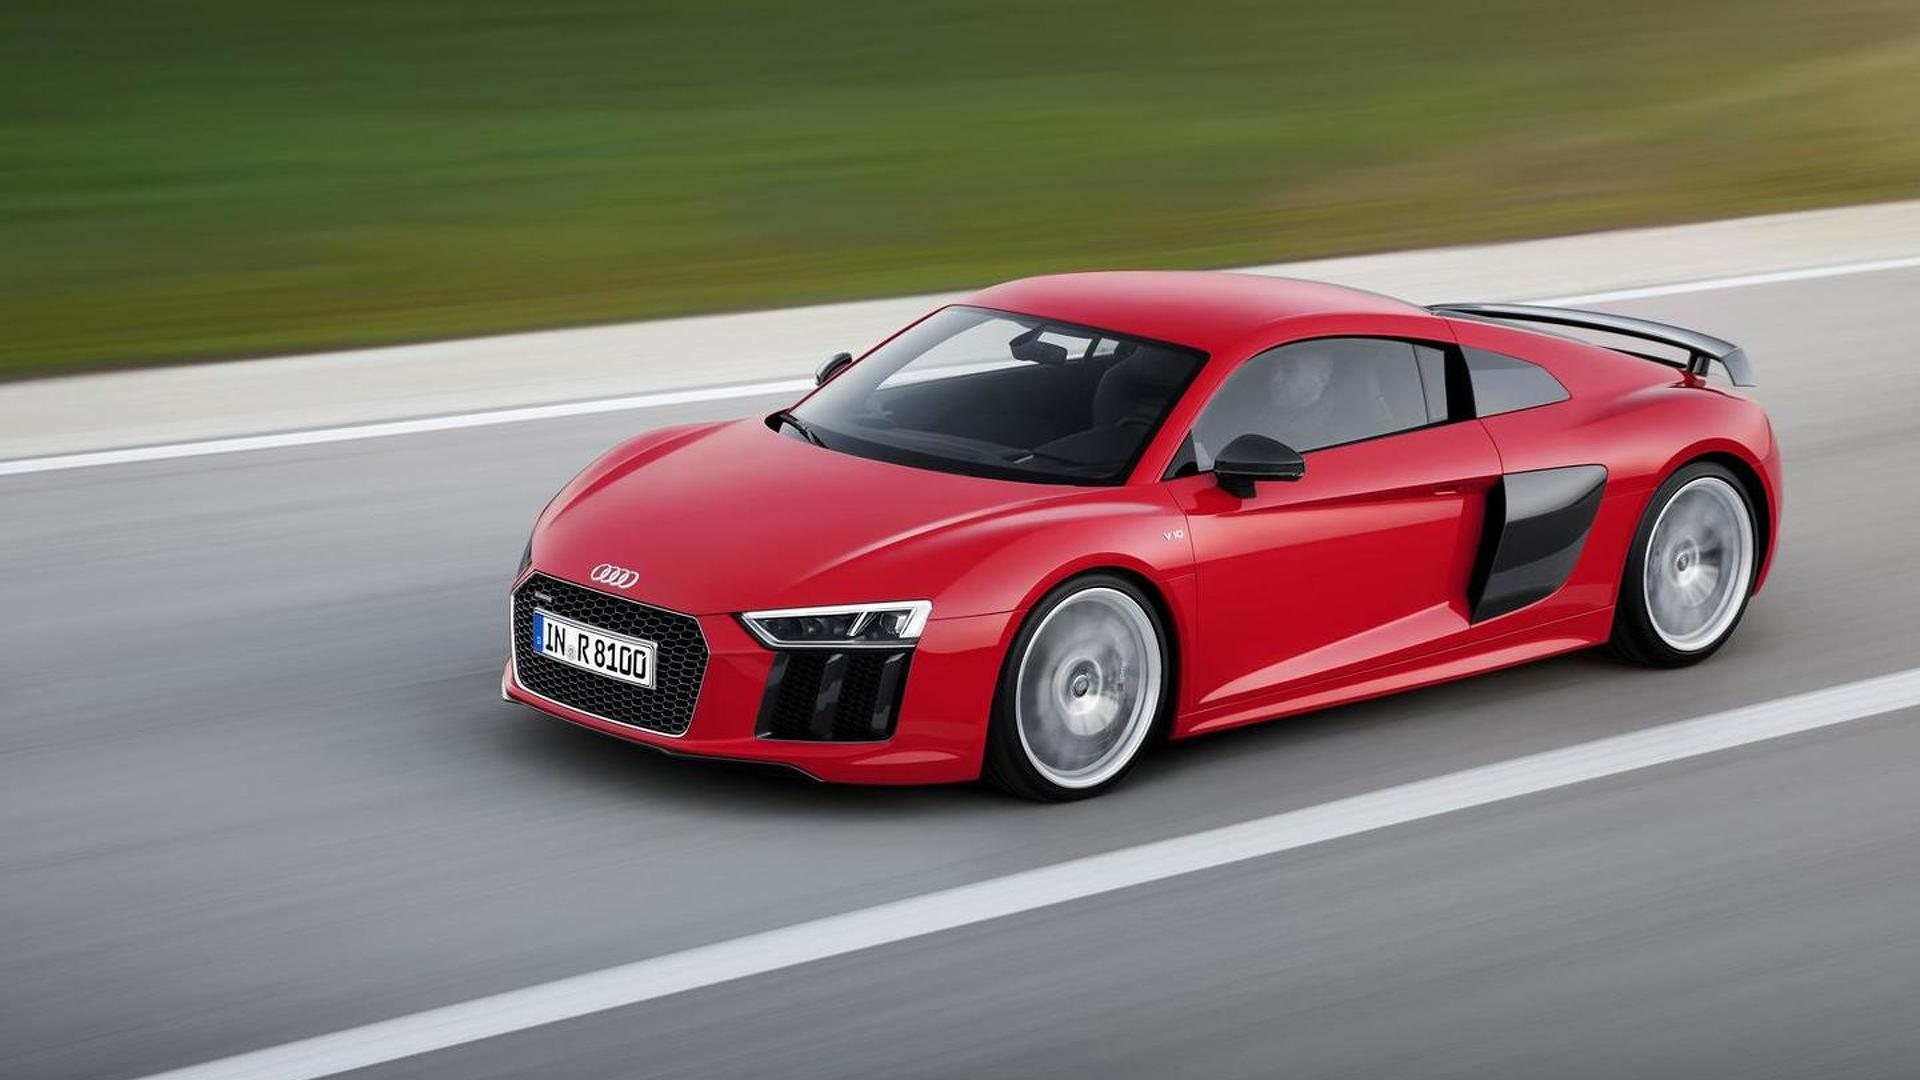 Entry-level Audi R8 will reportedly have a biturbo 3.0-liter V6